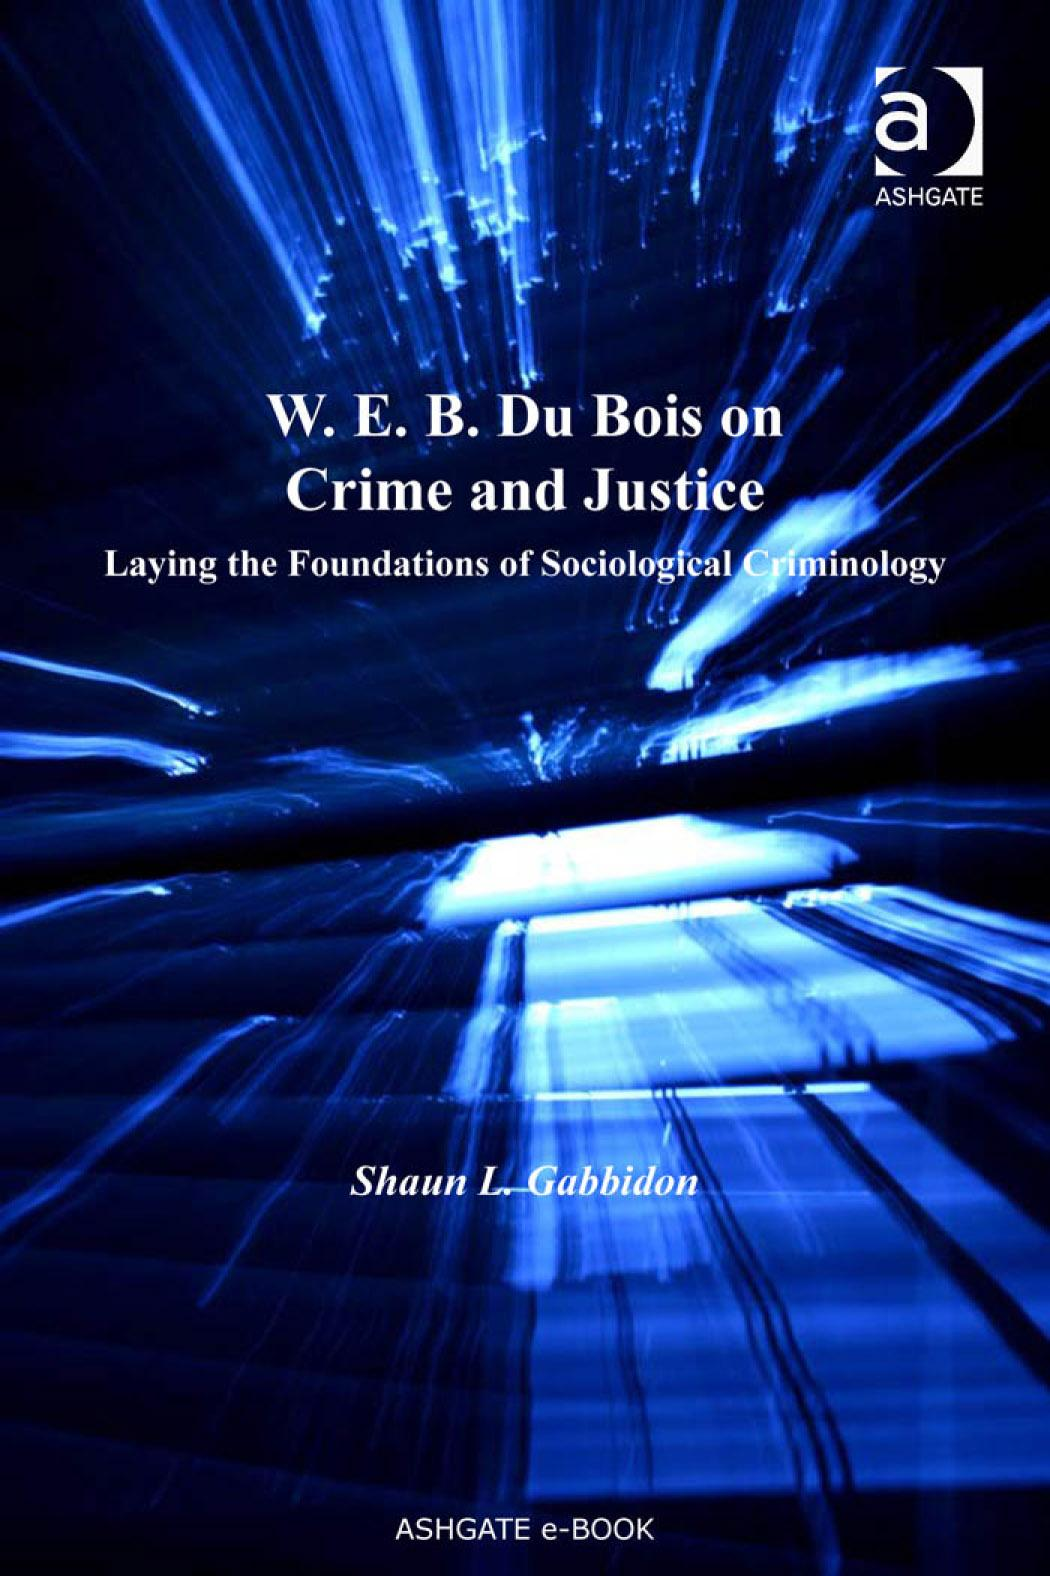 W.E.B. Du Bois on Crime and Justice: Laying the Foundations of Sociological Criminology. Interdisciplinary Research Series in Ethnic, Gender and Class EB9780754685883